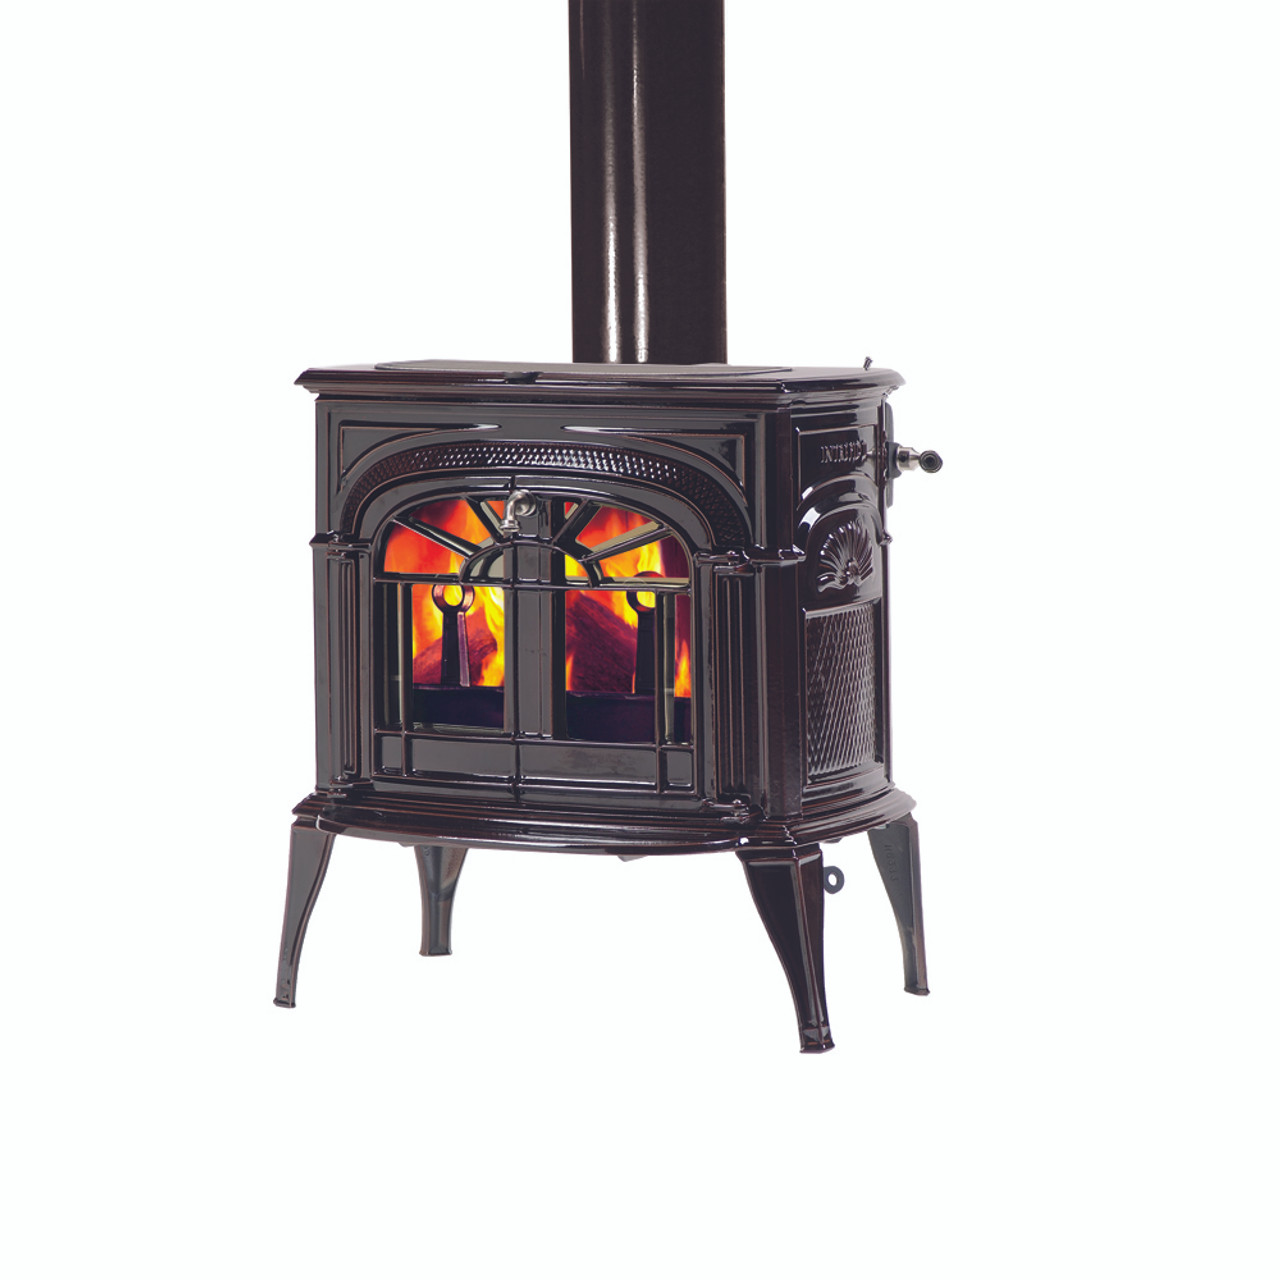 Vermont Castings Intrepid  Wood Burning Stove shown in Majolica Brown